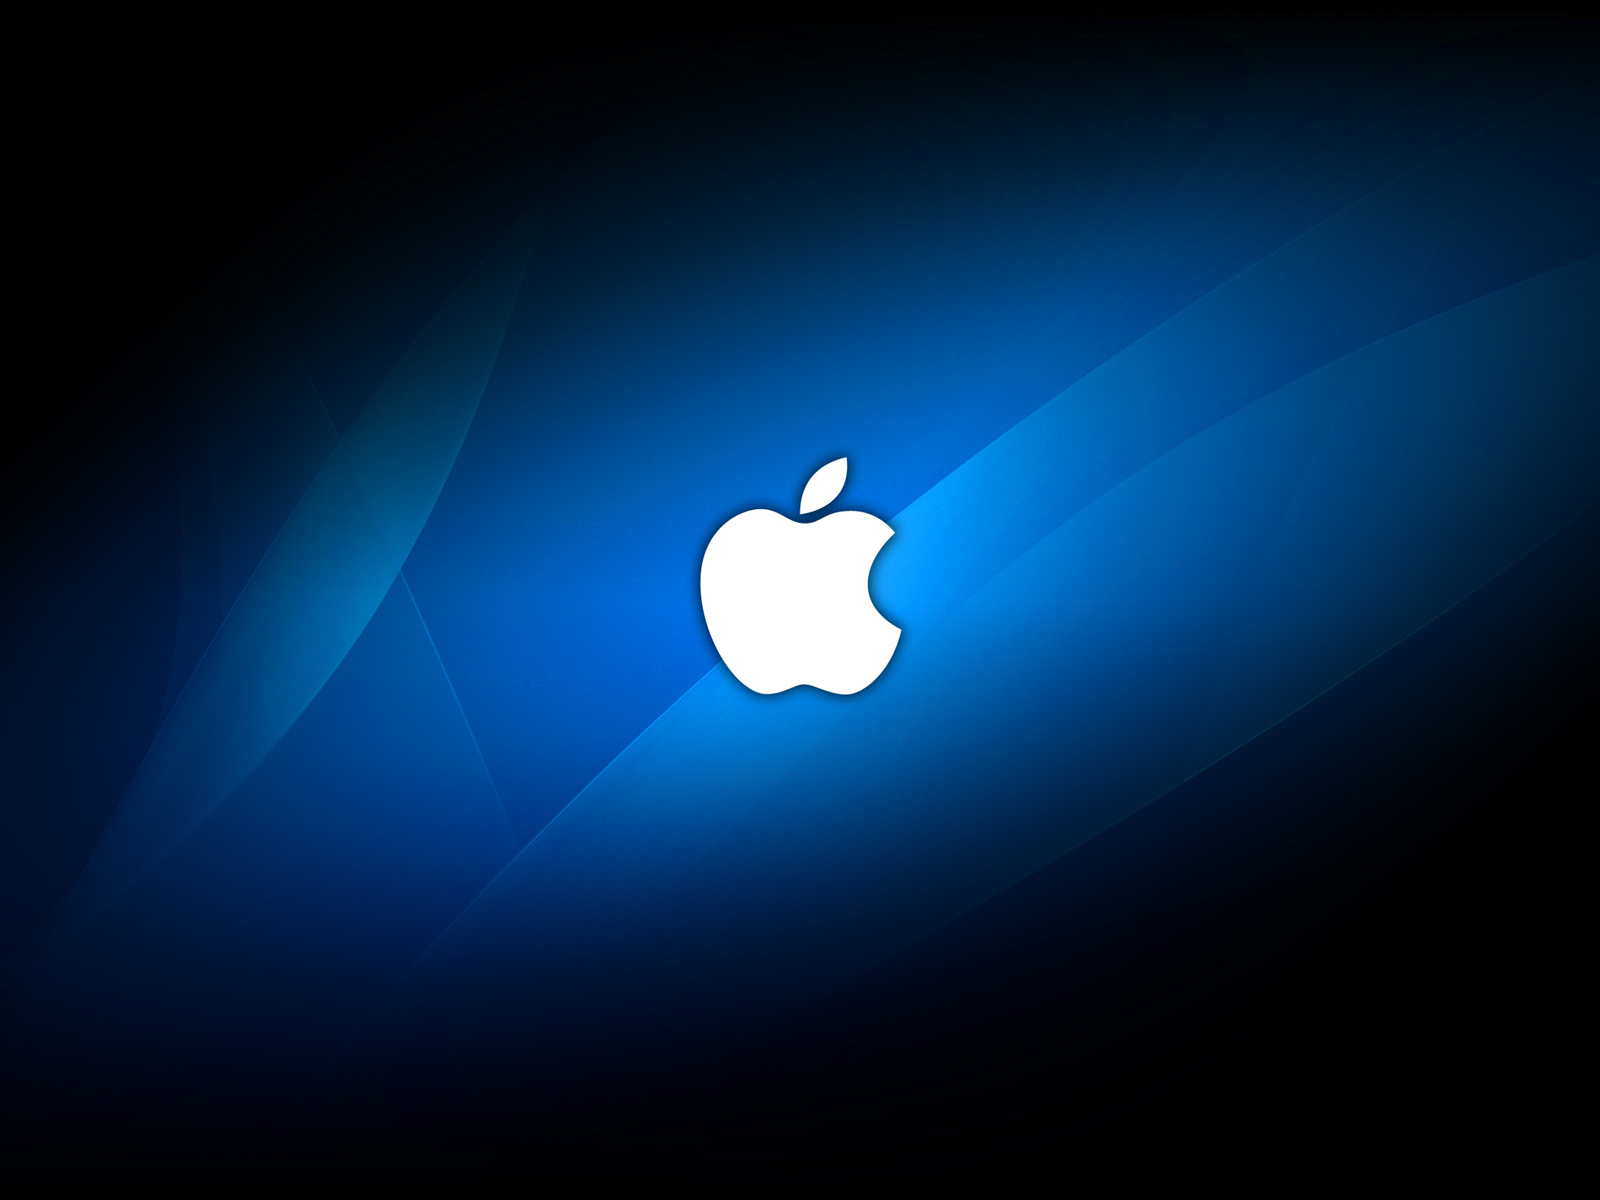 wallpaper apple logo wallpapers